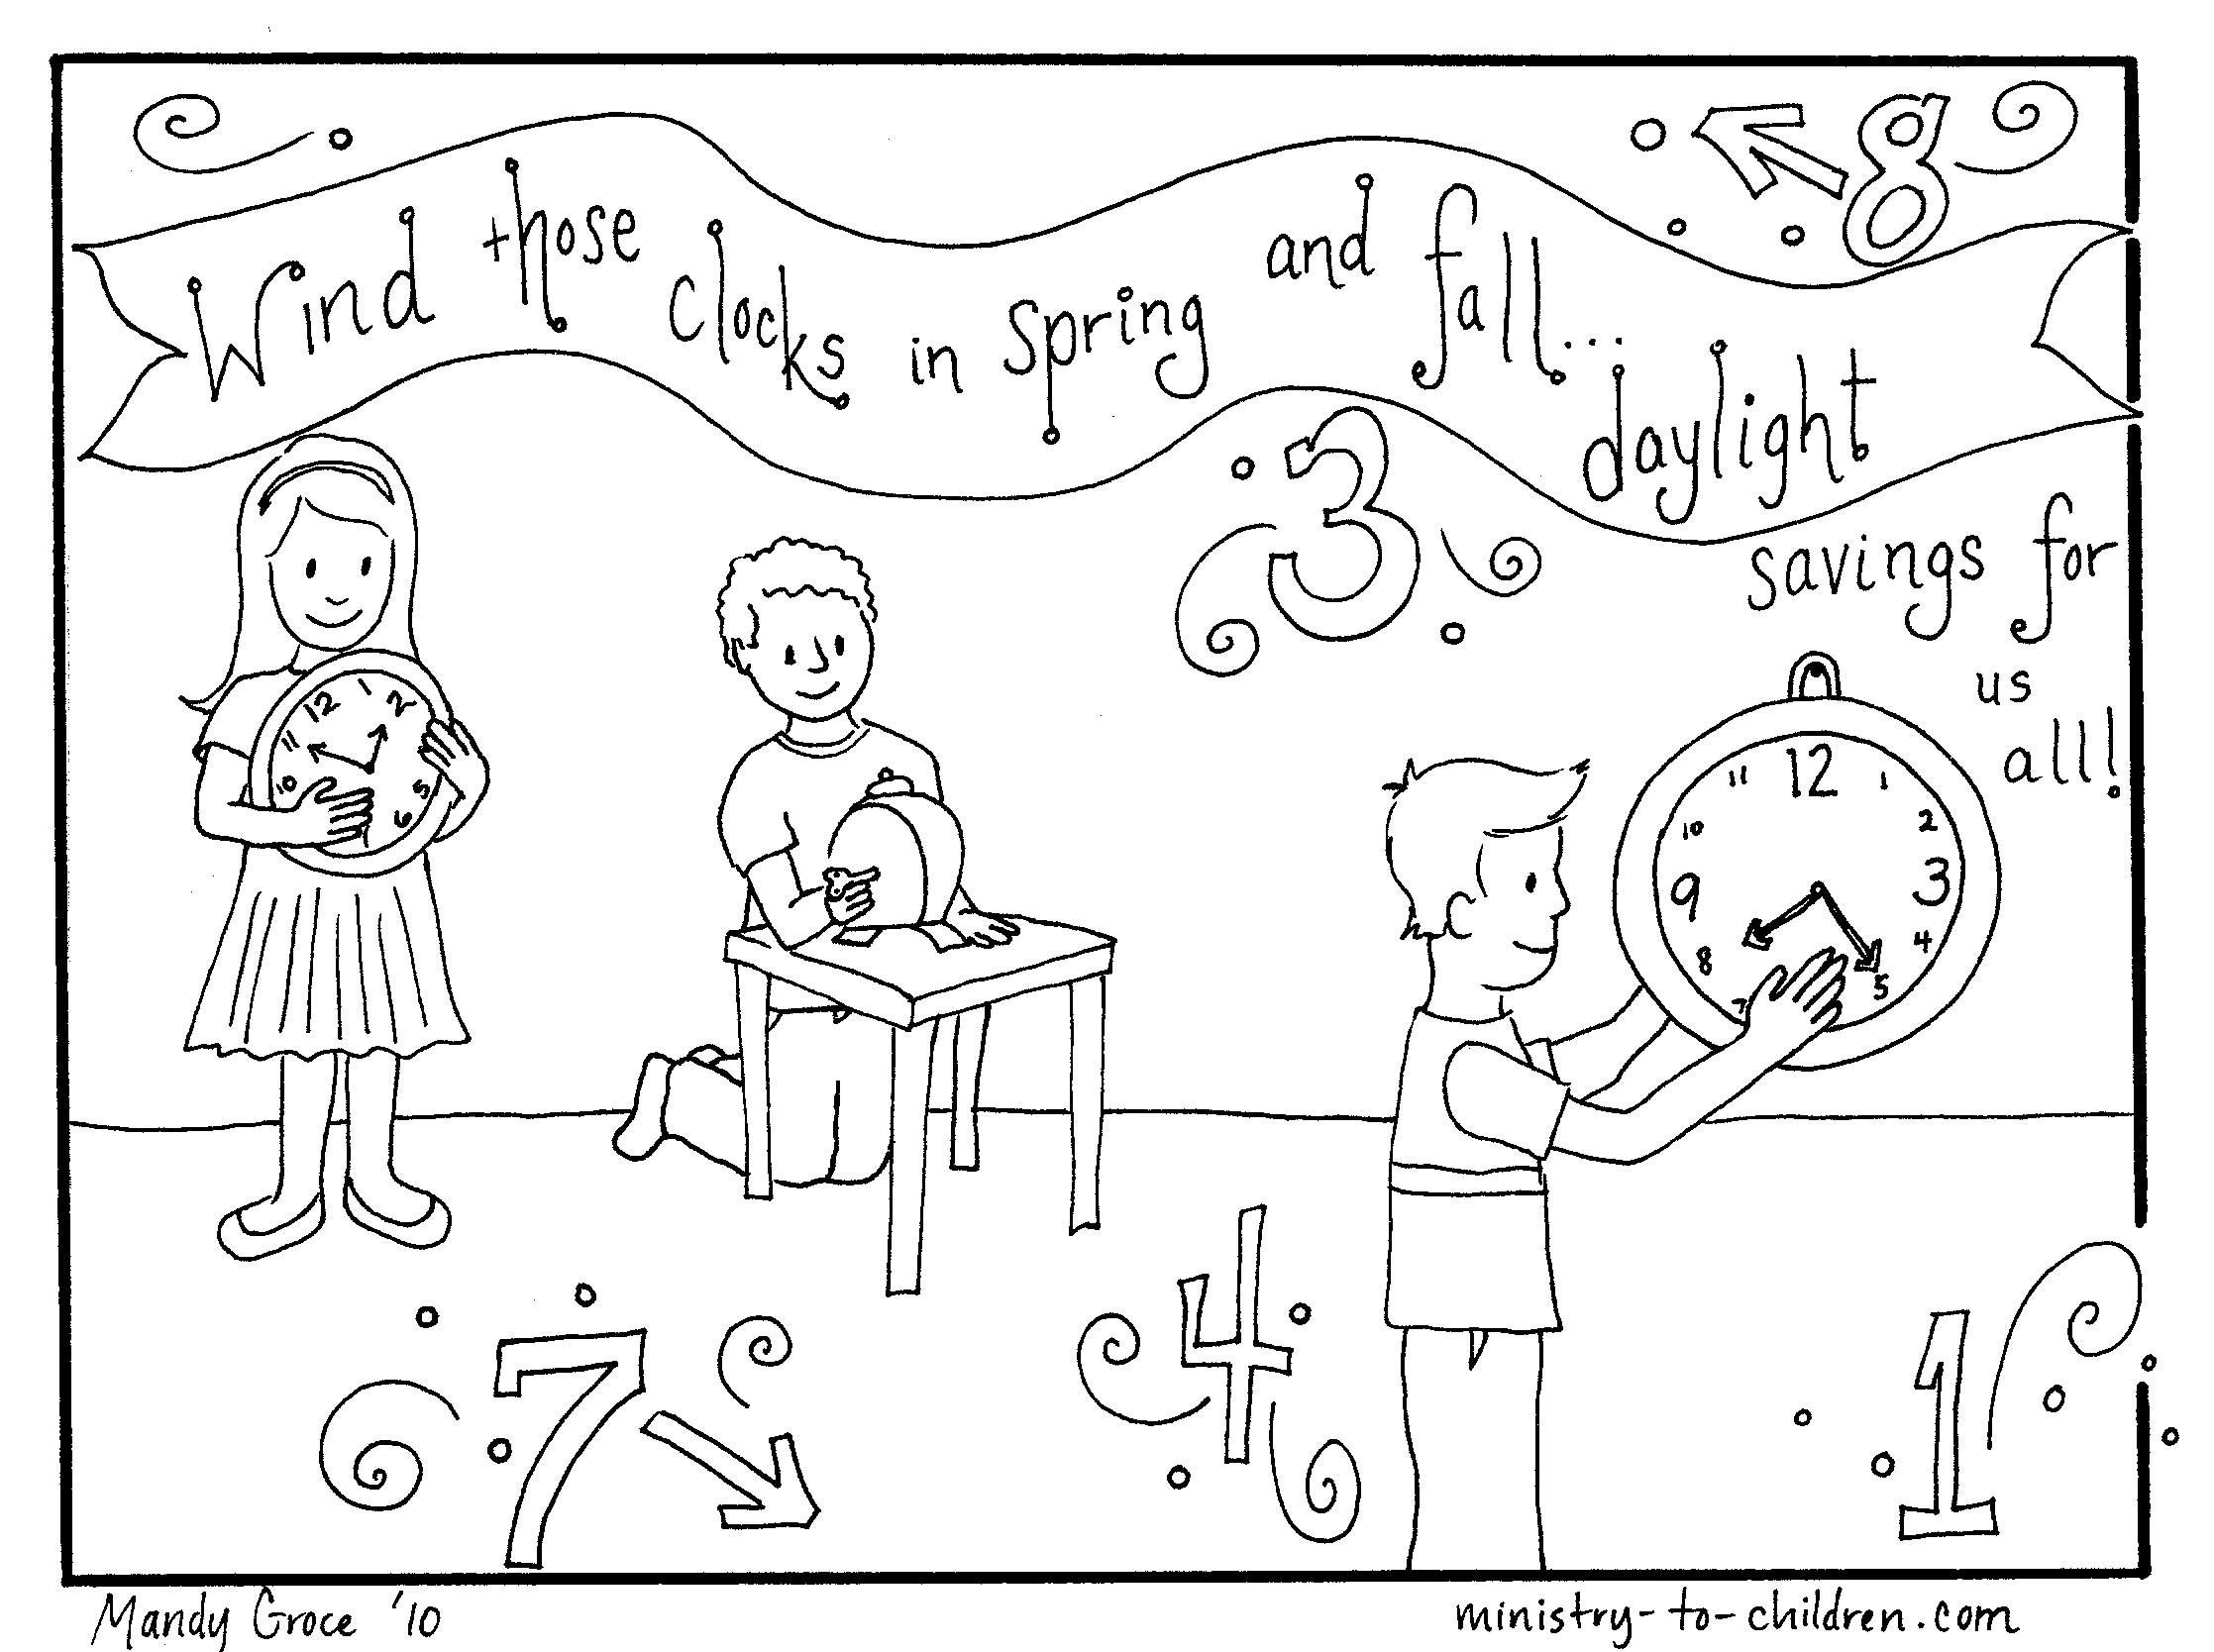 Coloring page about daylight savings time http://ministry-to ...